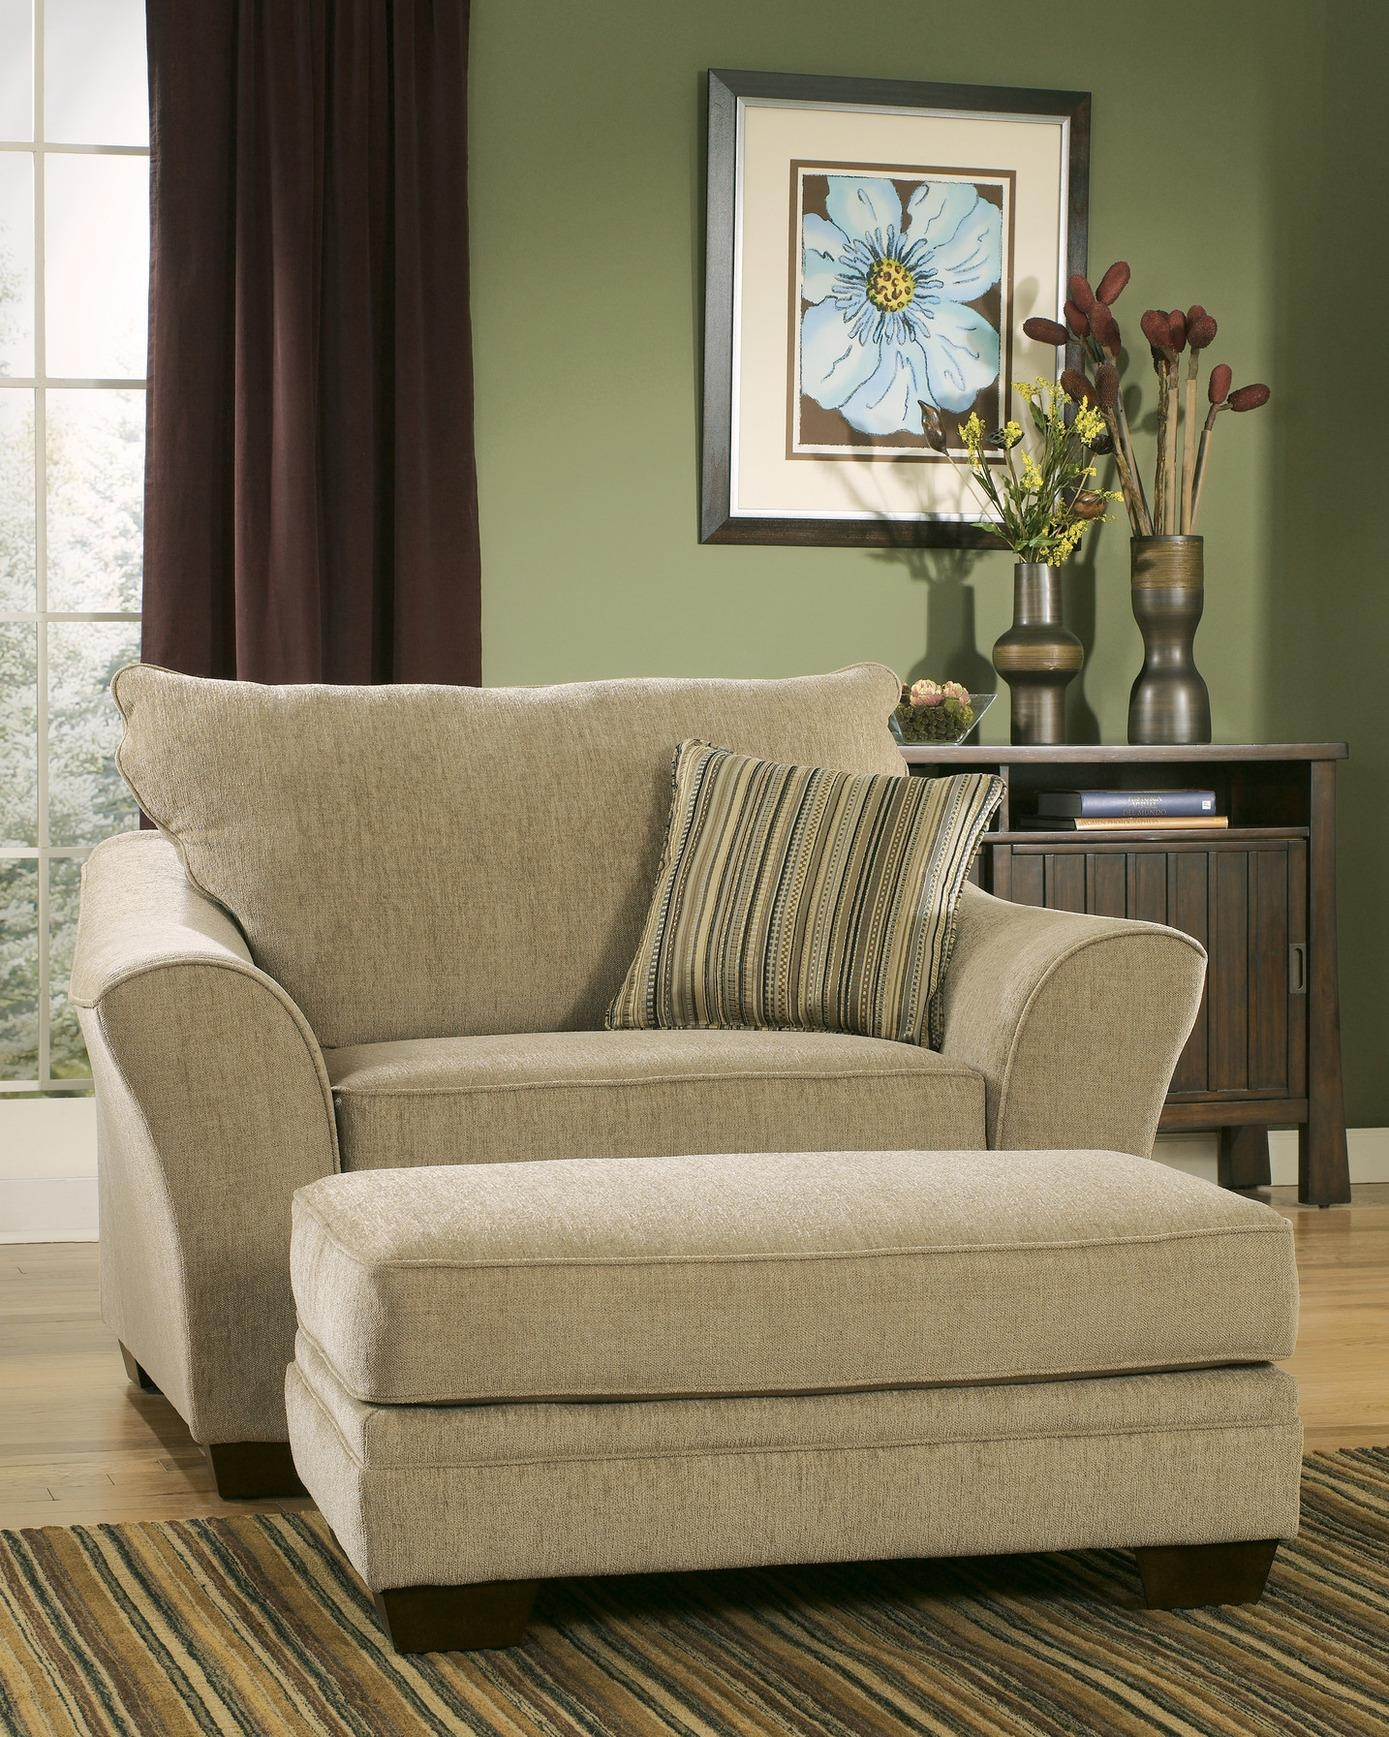 Big Sofa Chair | Tehranmix Decoration Within Large Sofa Chairs (View 6 of 20)